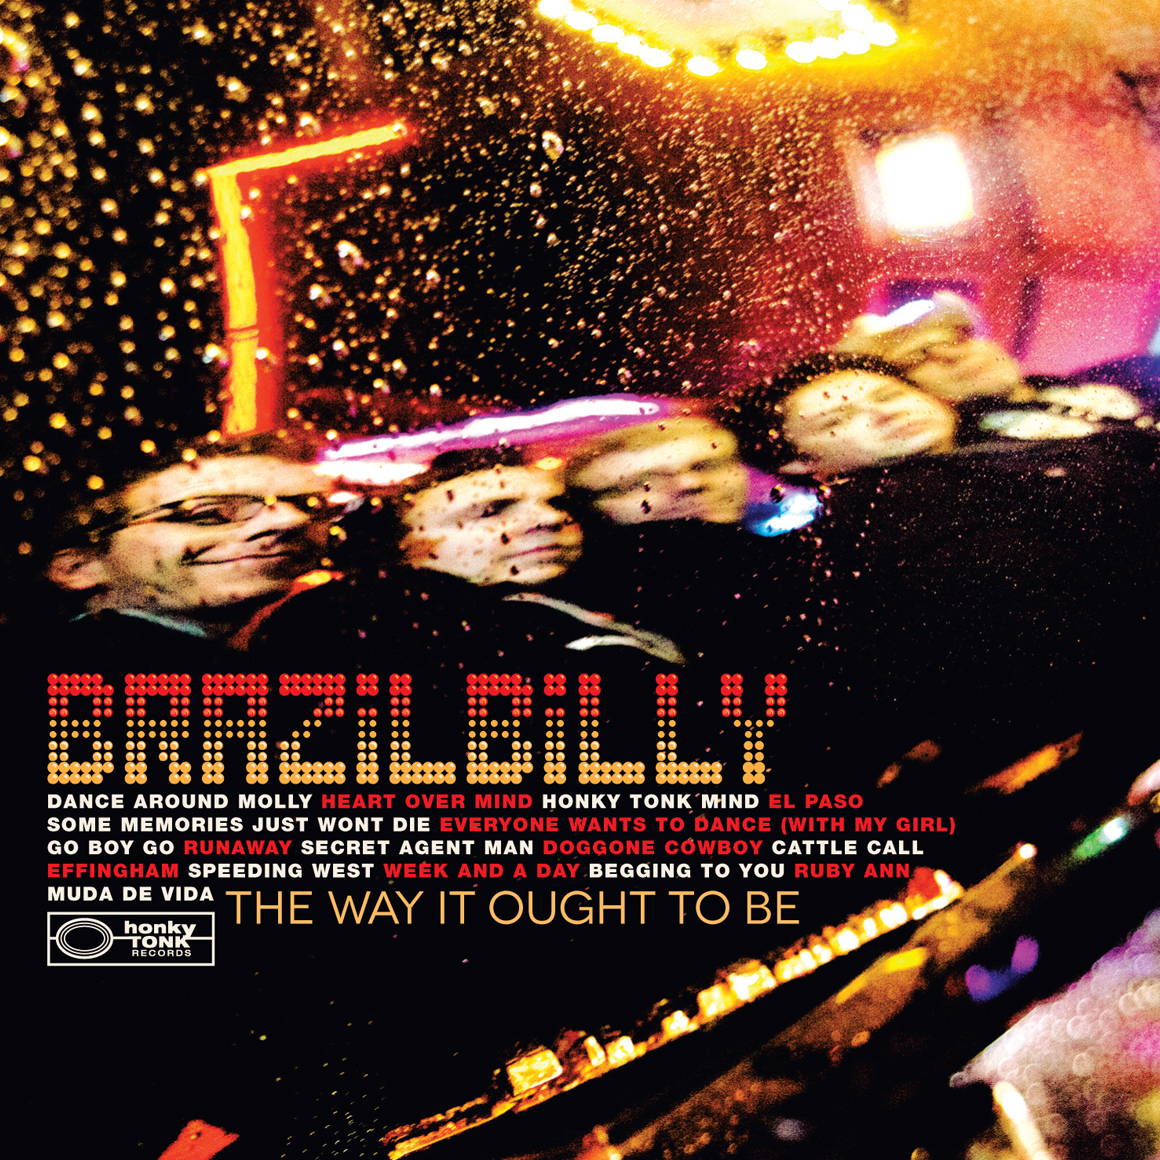 Brazilbilly CD (2012). Art Direction & Packaging Design. We shot this picture about ten minutes after we got the vinyl version shot. Guitarist Chris Cassello was actually performing at Robert's that night and had run back in to play a few tunes while we waited out a short lived cloud burst. Again we were capturing the reflection of the band in the Cadillac's trunk lid to put a modern twist on the classic old Nashville album covers of the 60s and 70s. We took this shot just before we wiped down the car surface from the rain and got what I think is a beautiful image. If you look closely at the bottom of the shot you can see the entire length of Lower Broadway reflected in the car shape. Gorgeous.